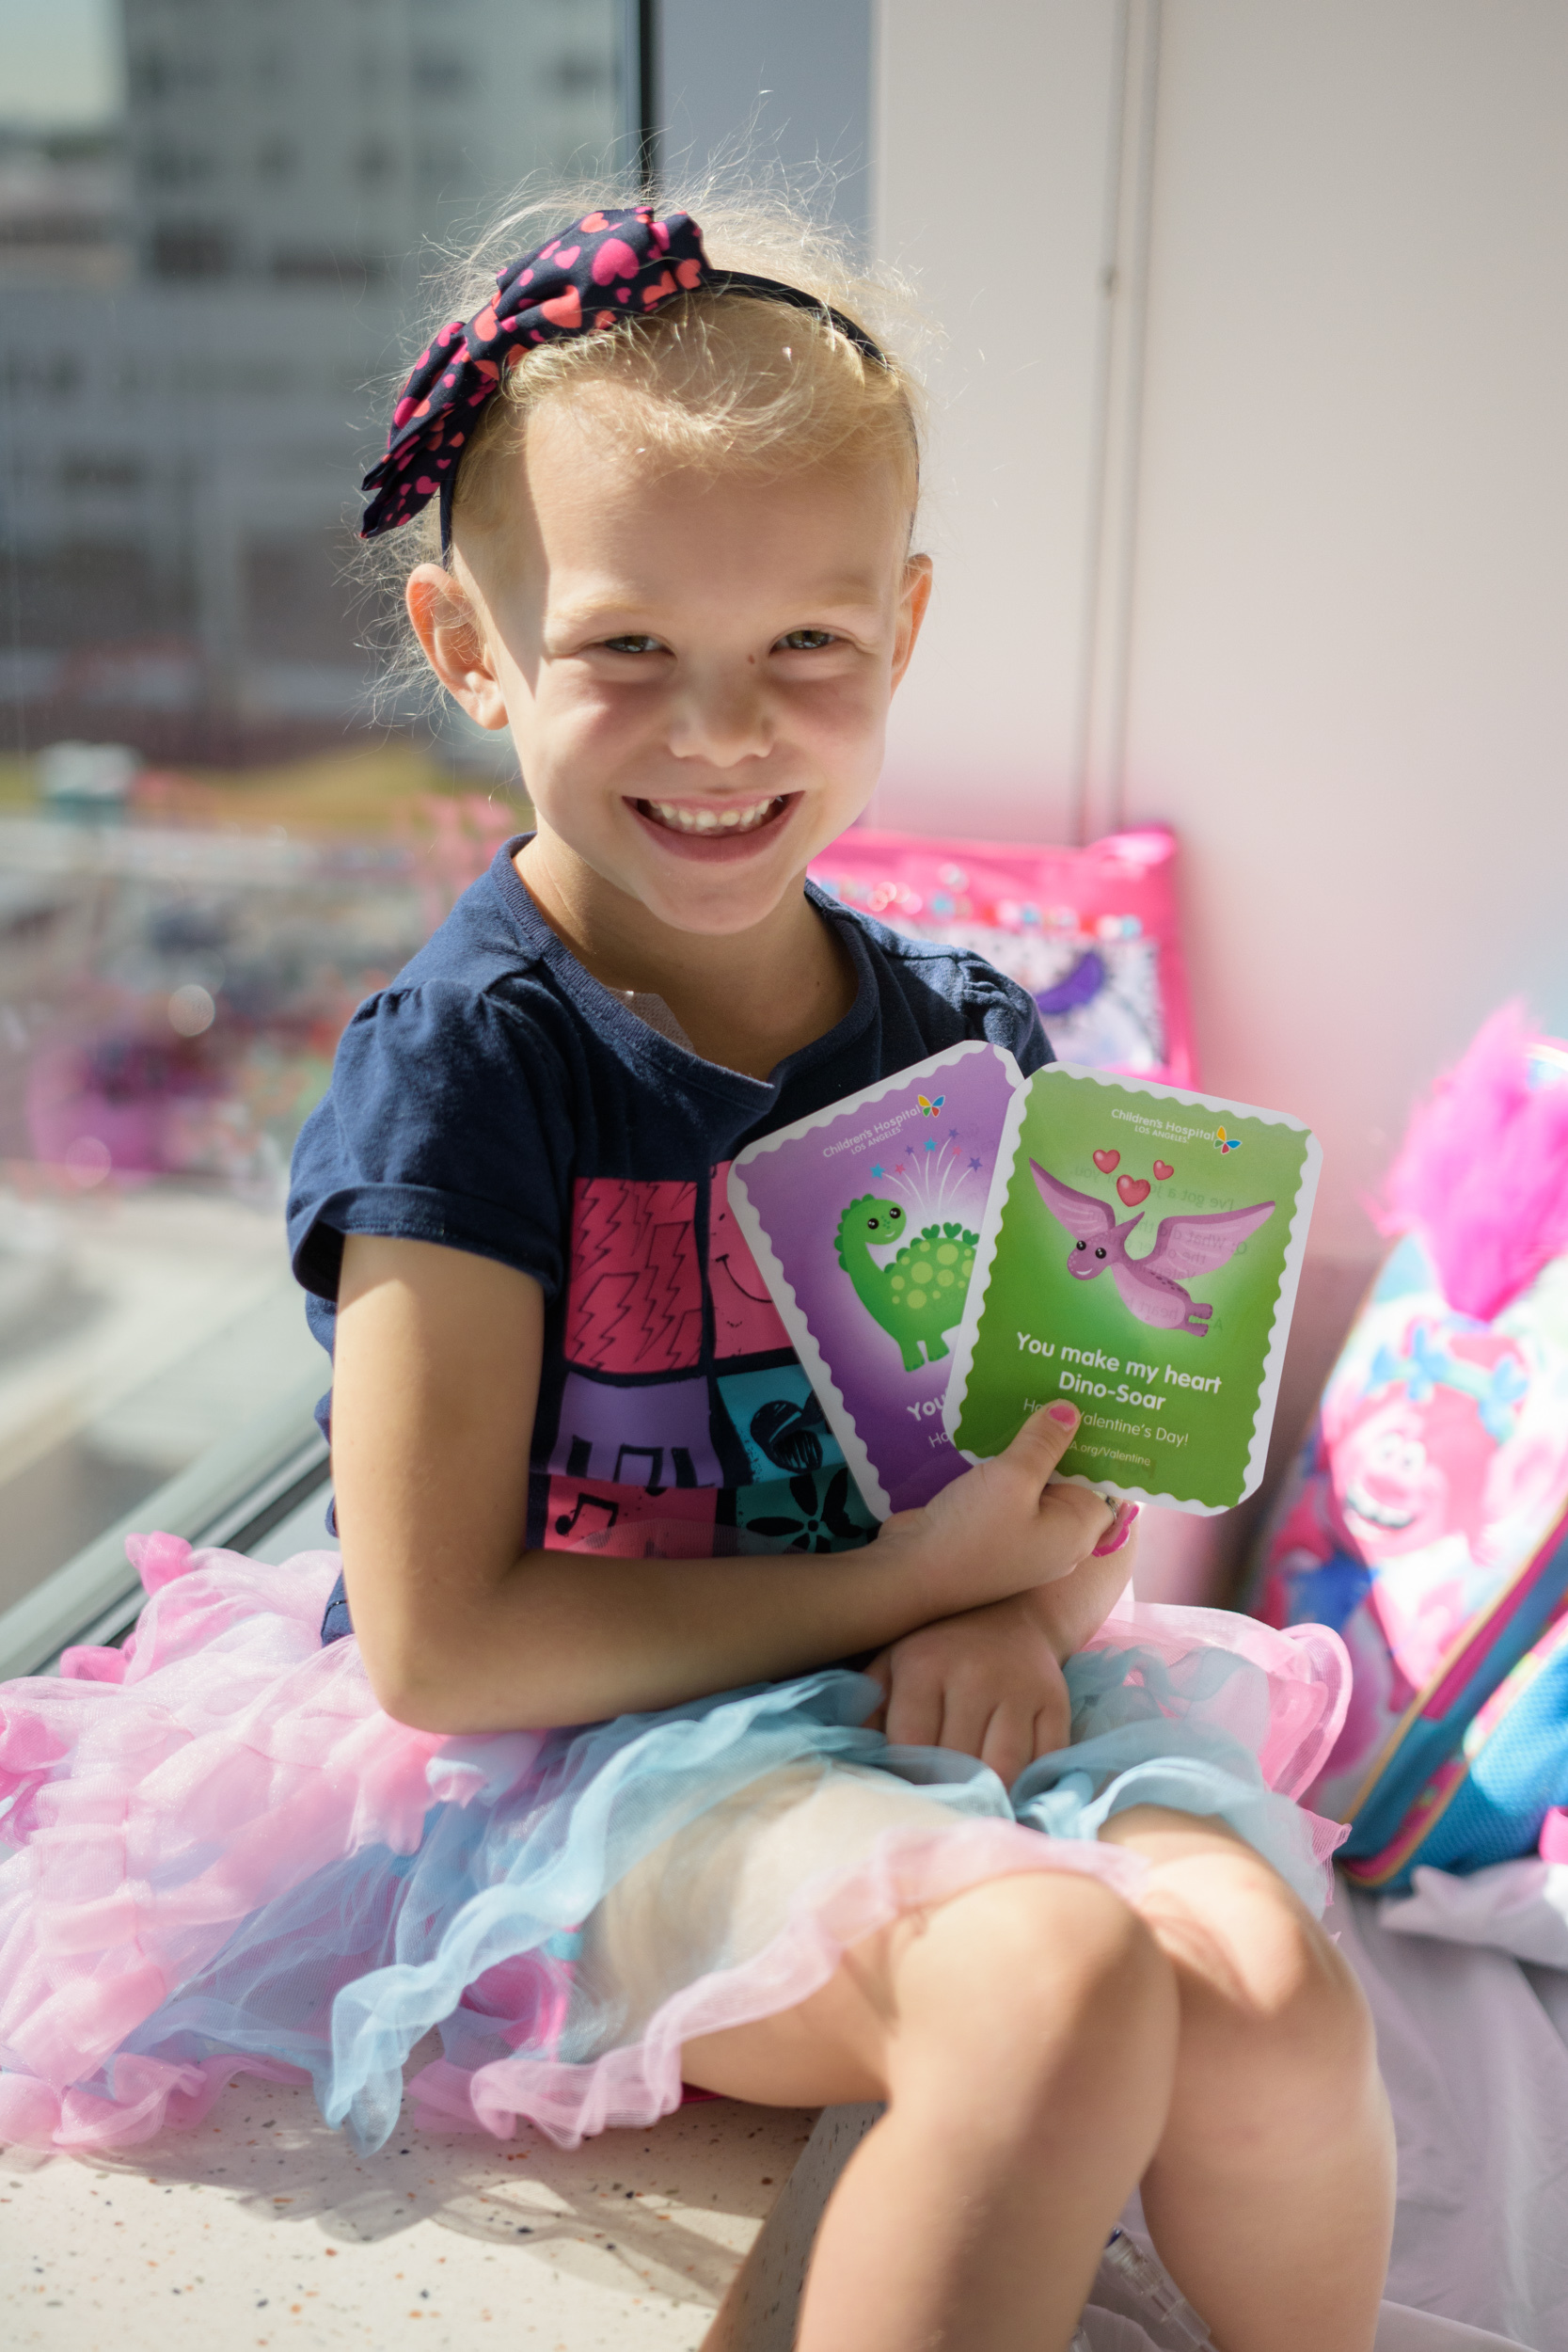 childrens hospital los angeles kicks off annual valentines day card drive on chlaorg business wire